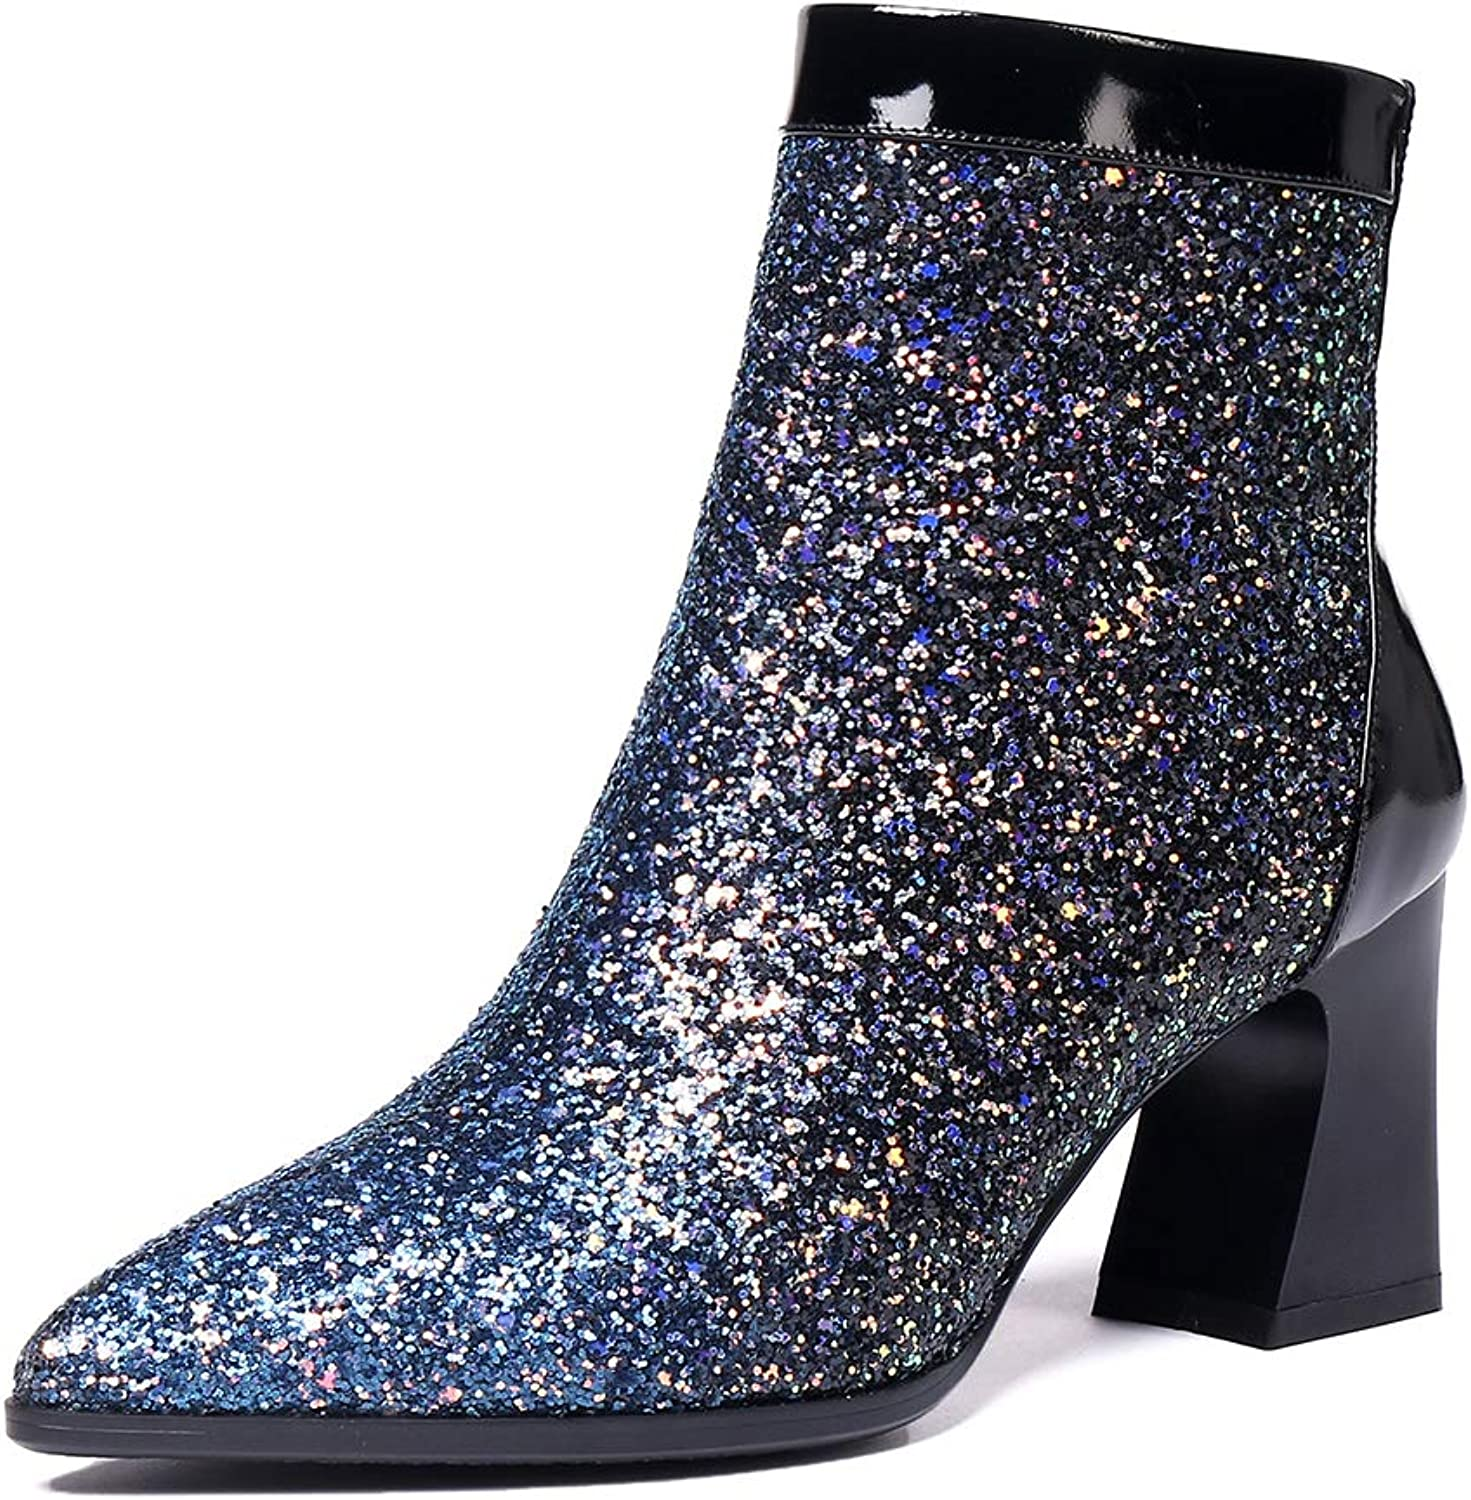 MINIVOG Women's Sequined Boots Pointed Toe Chunky Heel Glitter Booties